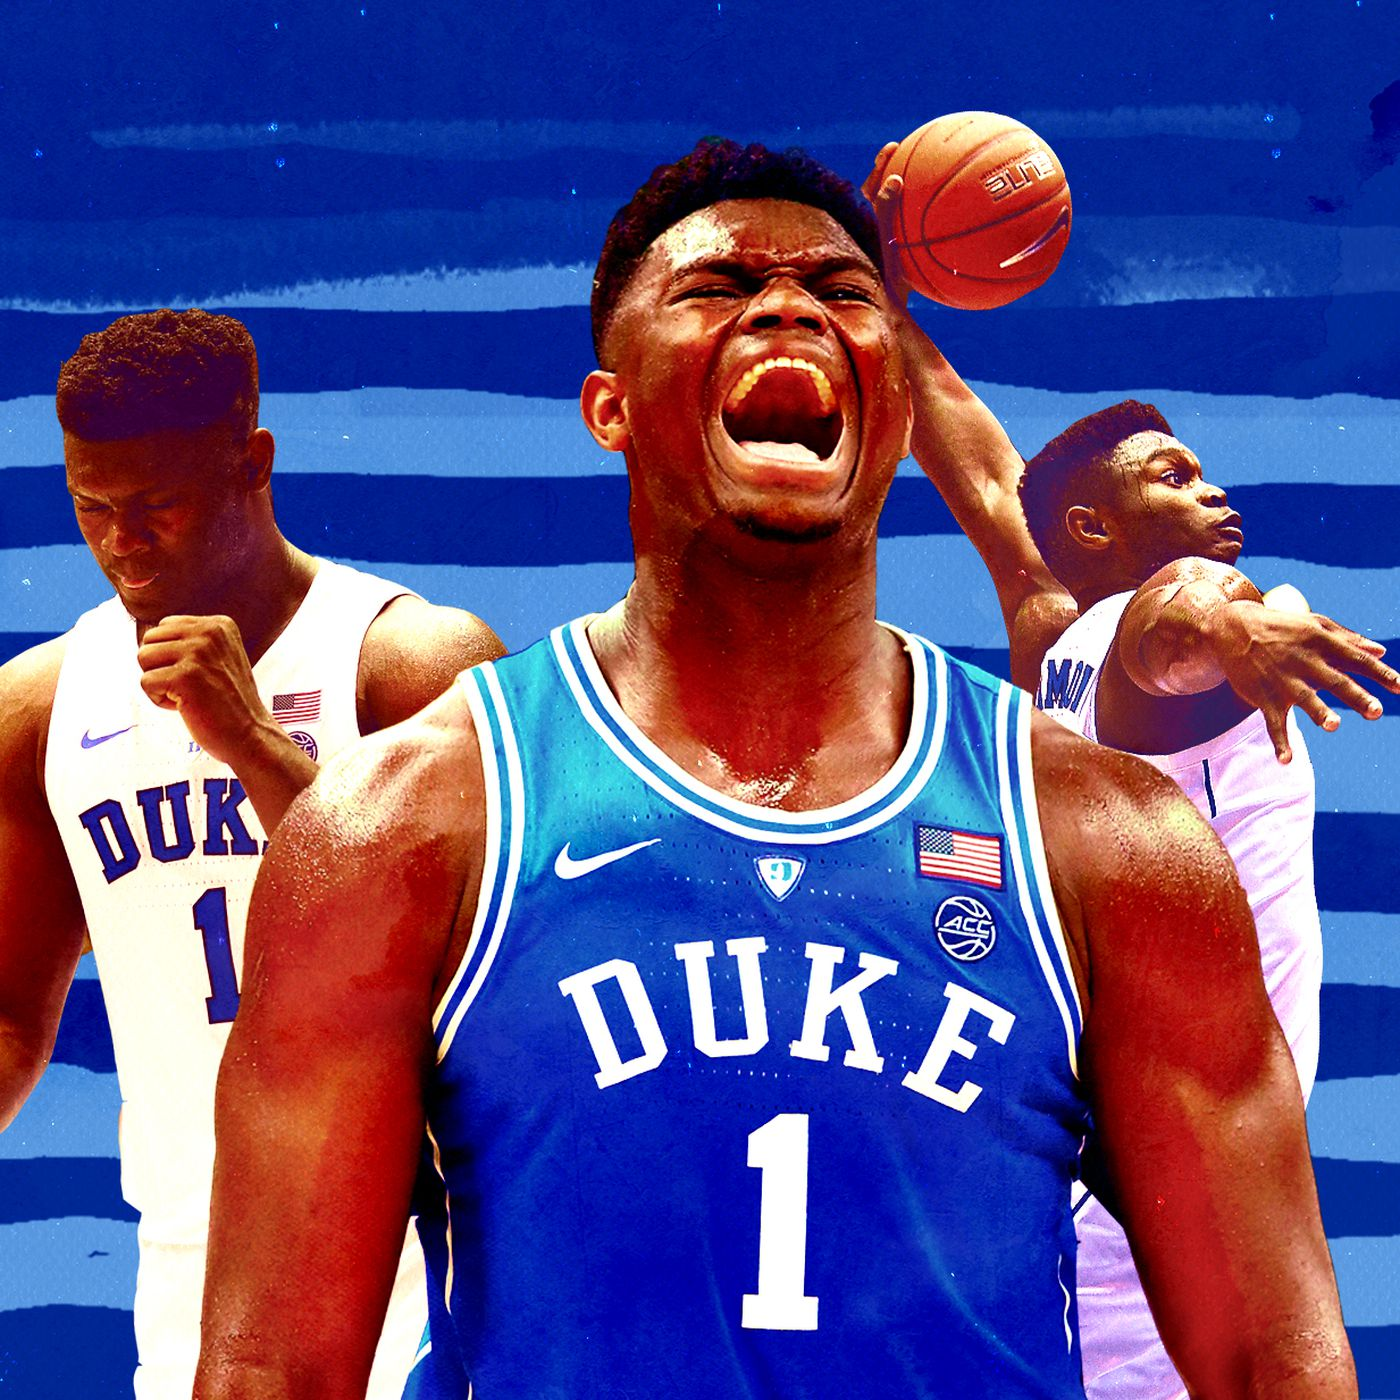 aa452d9ca58a Zion Williamson s NBA Draft transformation from mixtape star to can t miss  No. 1 pick